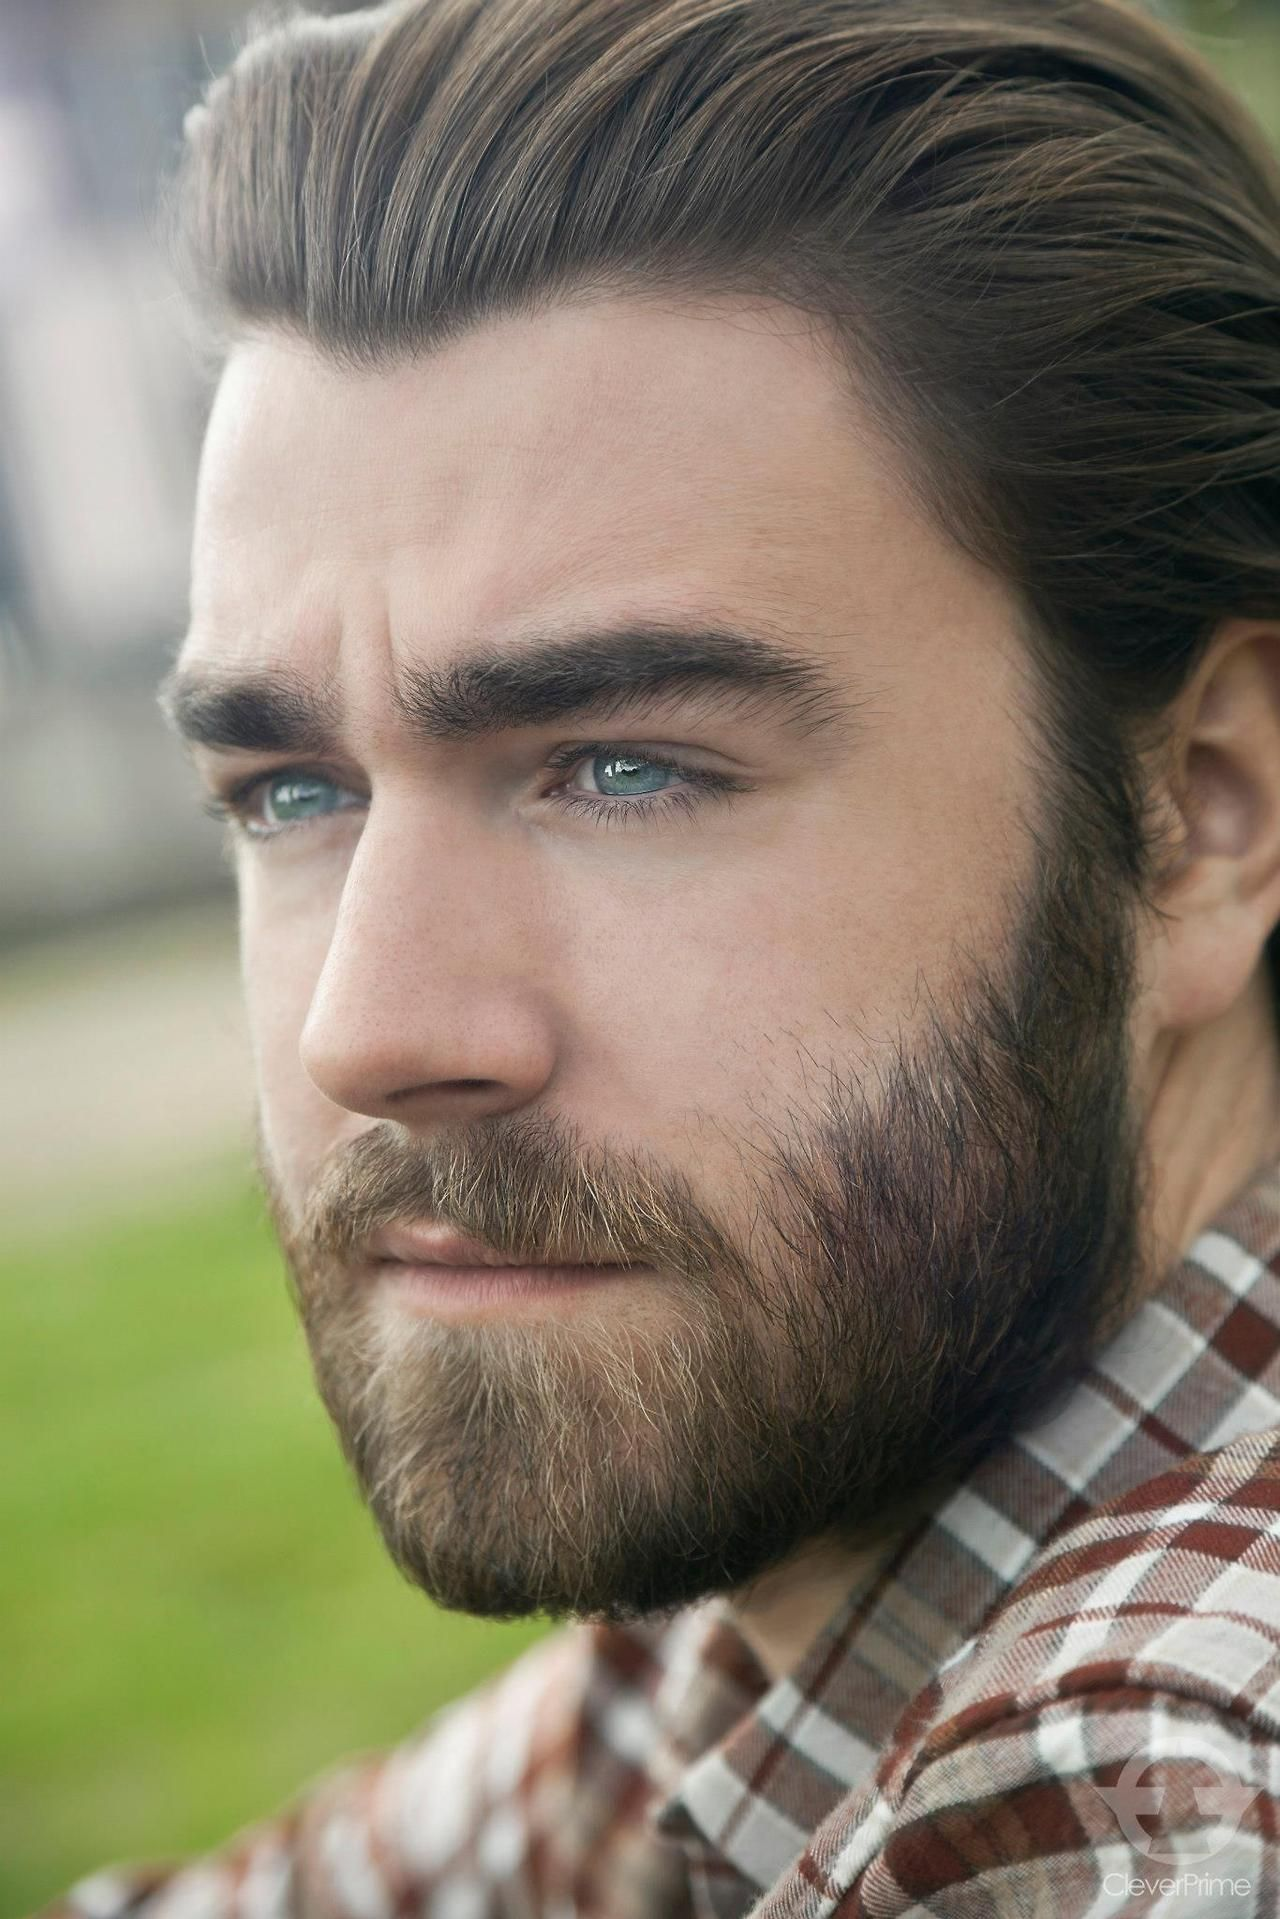 Short haircuts for men with beards slicked hair and piercing eyes  beard styles  pinterest  slicked